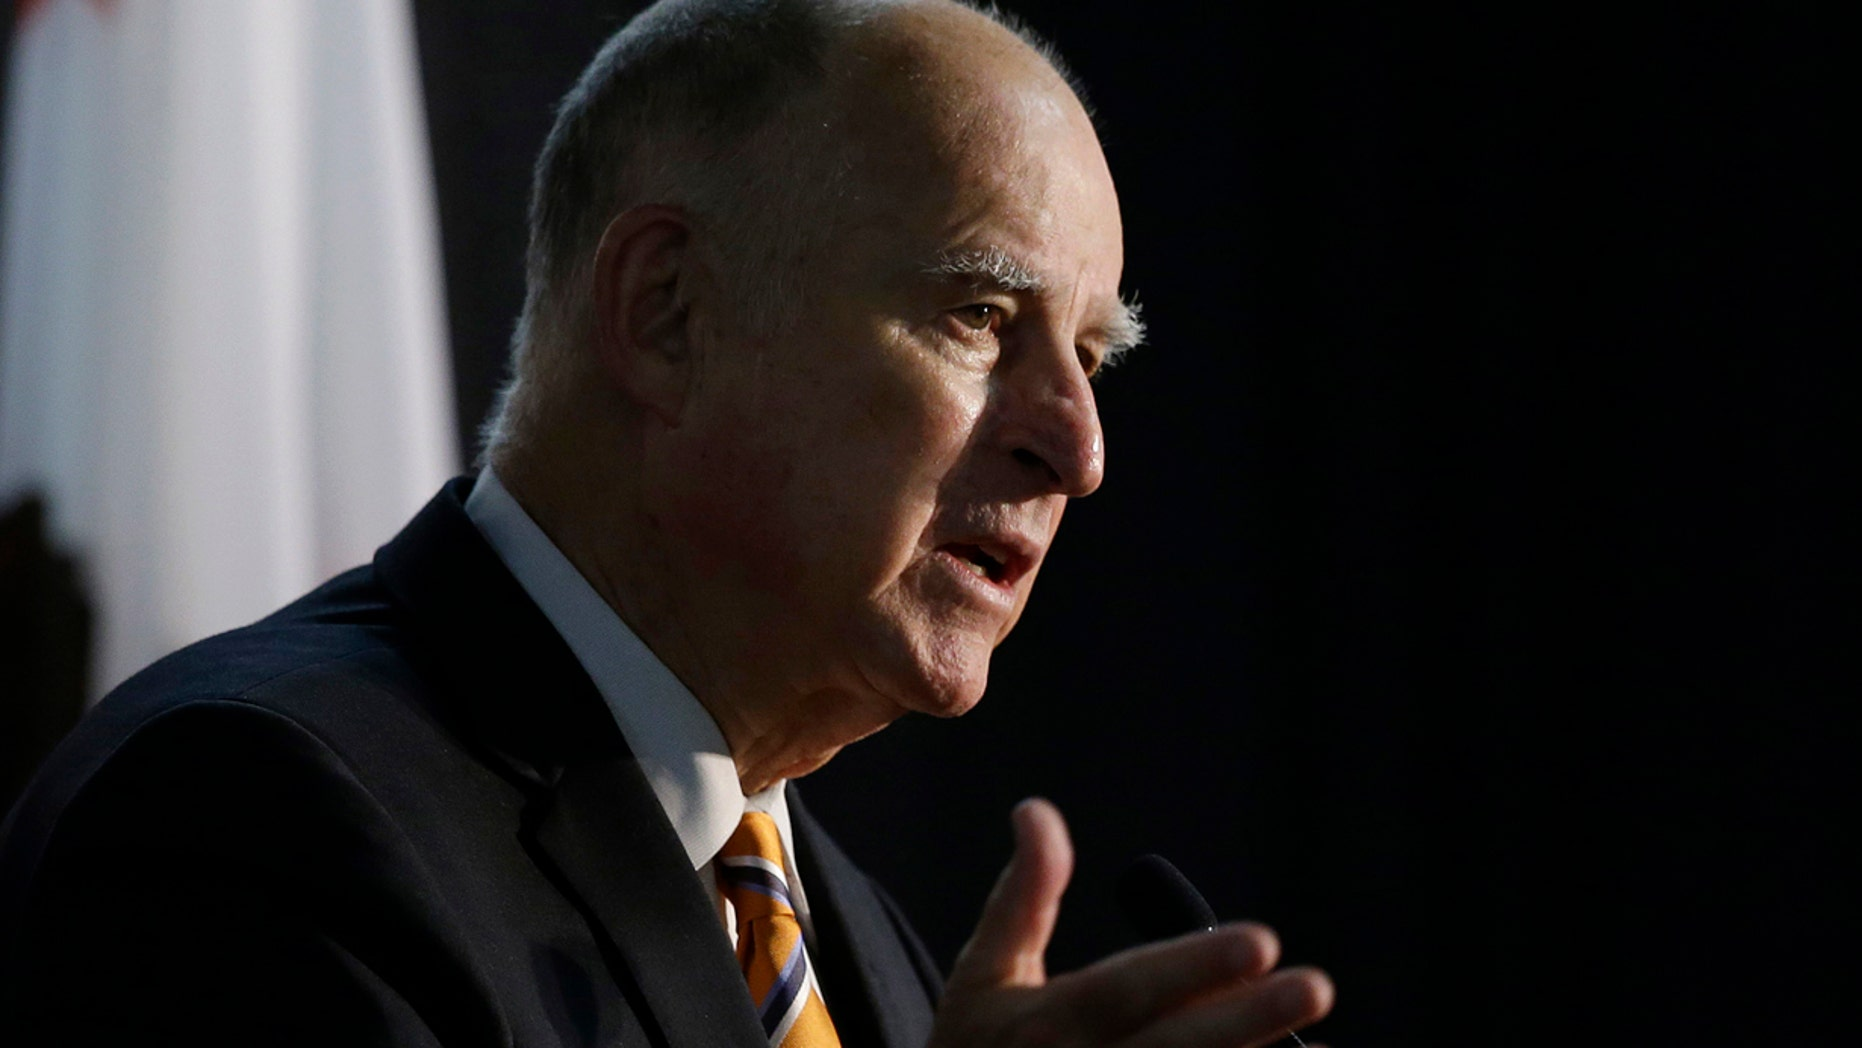 FILE 2018: California Gov. Jerry Brown will reportedly consider three bills intended to add restrictions on gun ownership in his state.